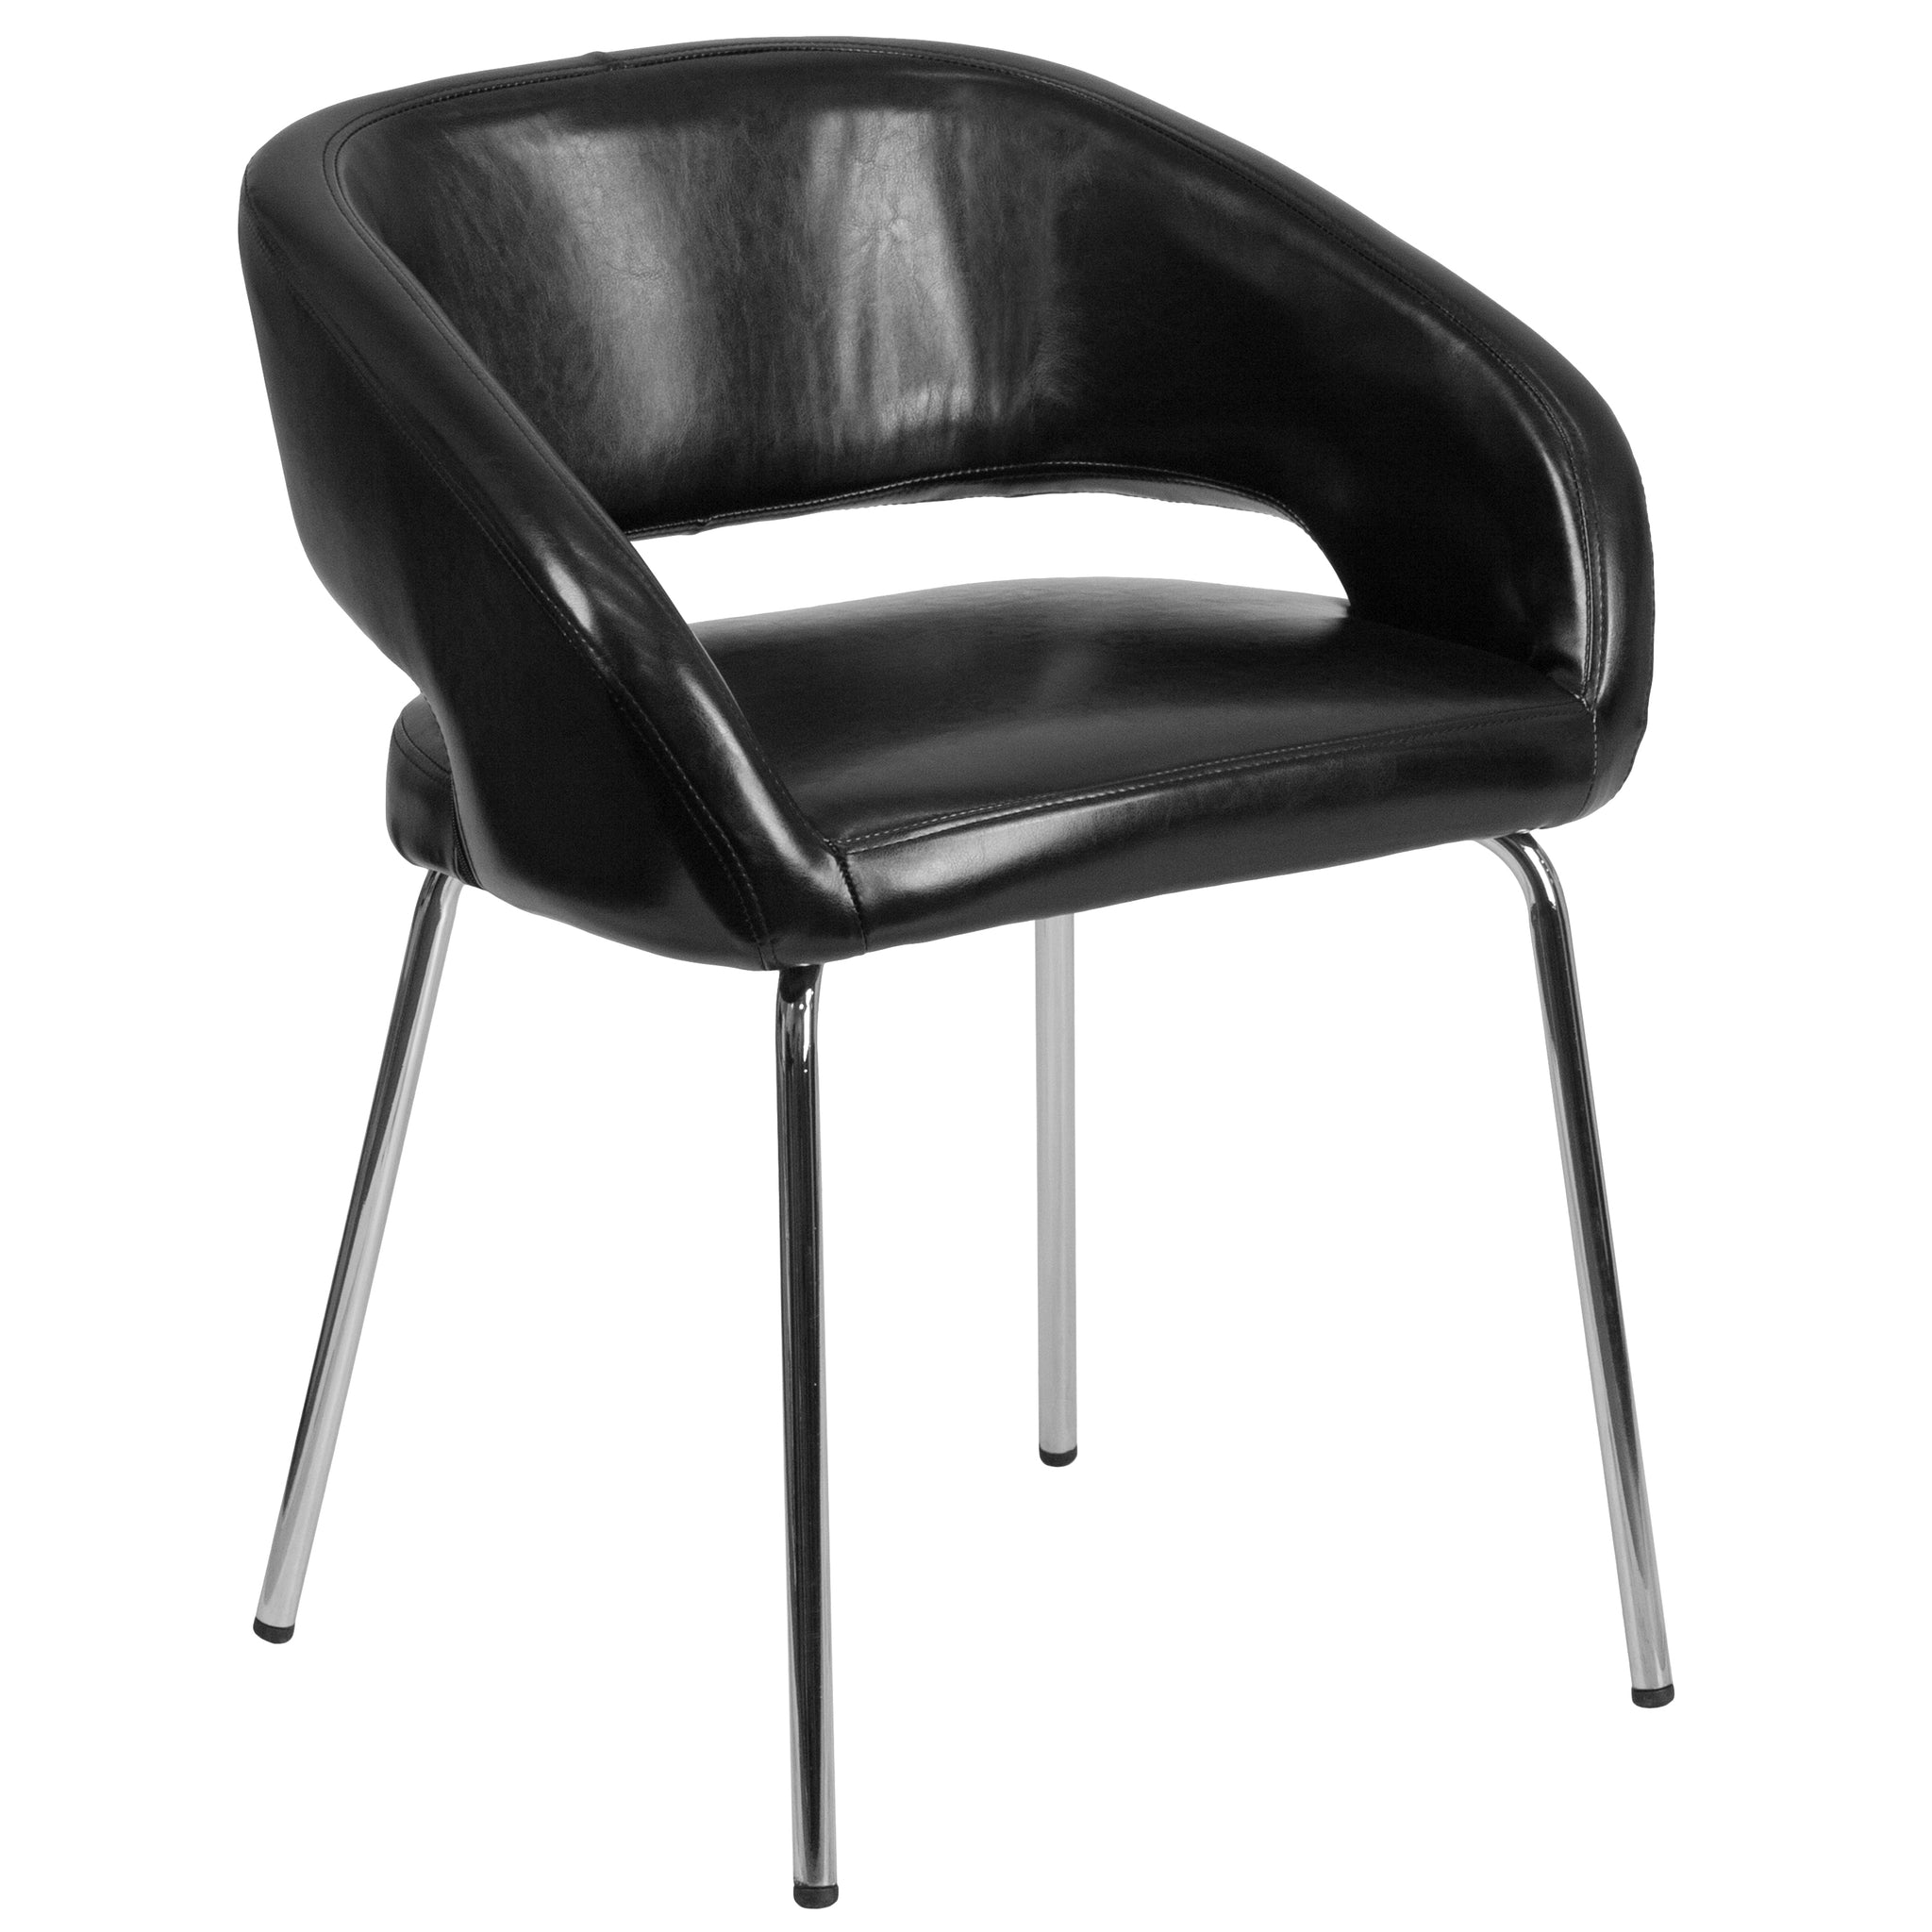 Fusion Series Contemporary Leather Side-Reception-Lounge Chair: Black